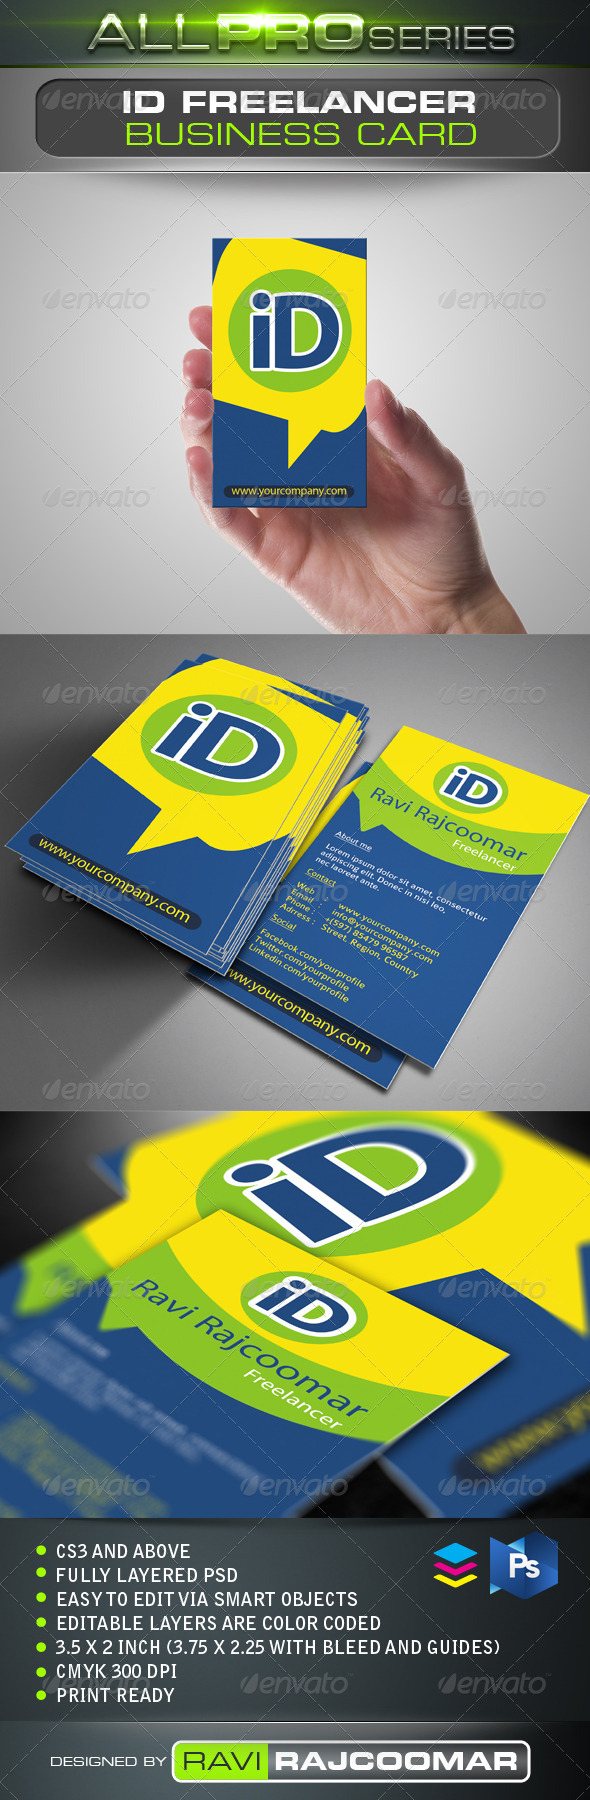 ID Freelancer Business Card - Creative Business Cards